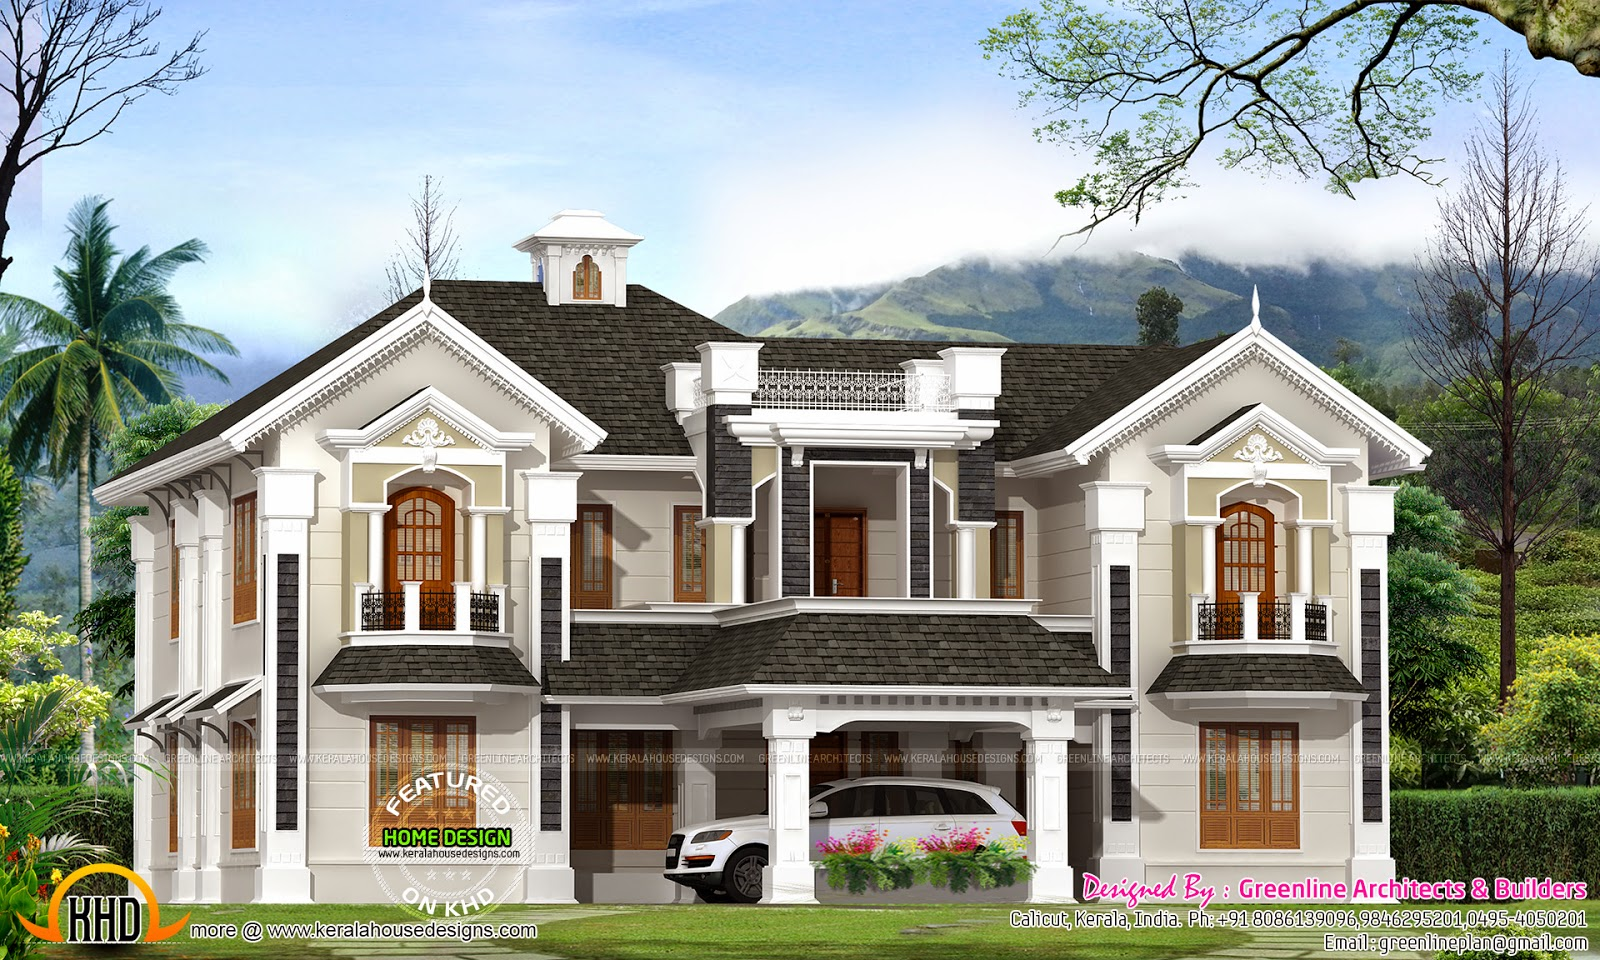 Colonial style house in kerala kerala home design and for House design styles